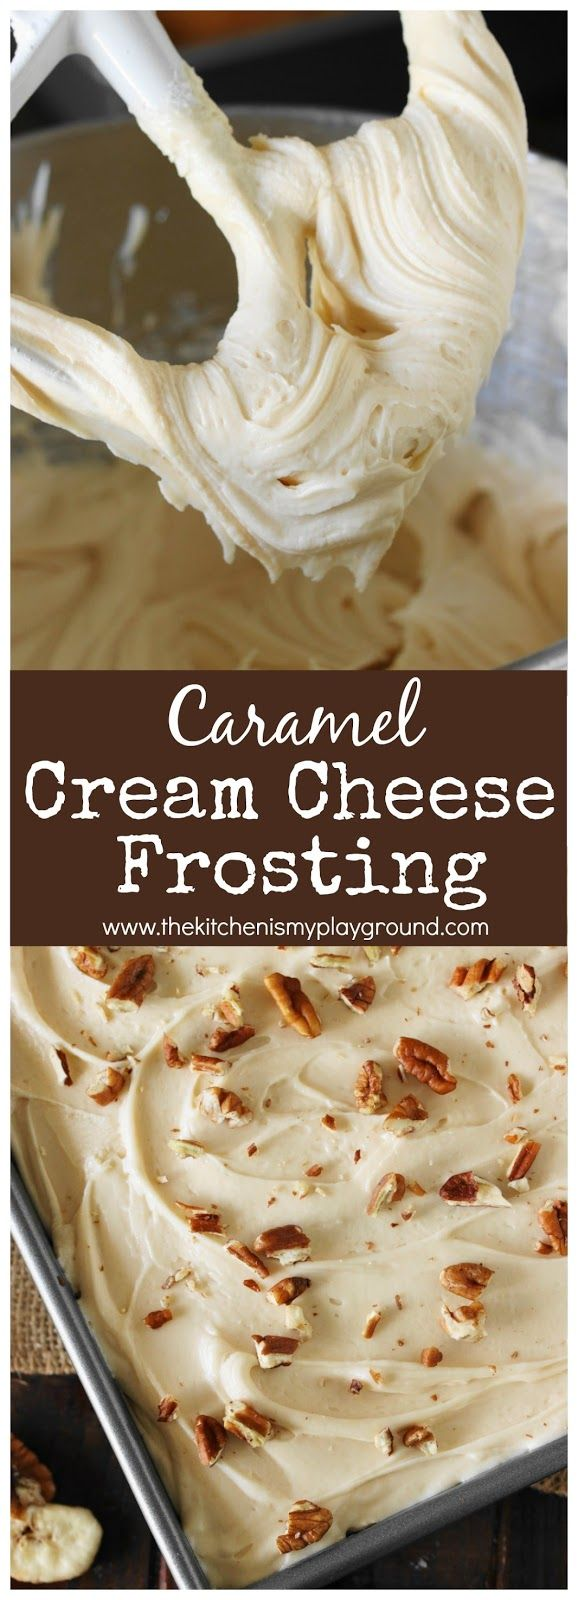 Caramel Cream Cheese Frosting pin image